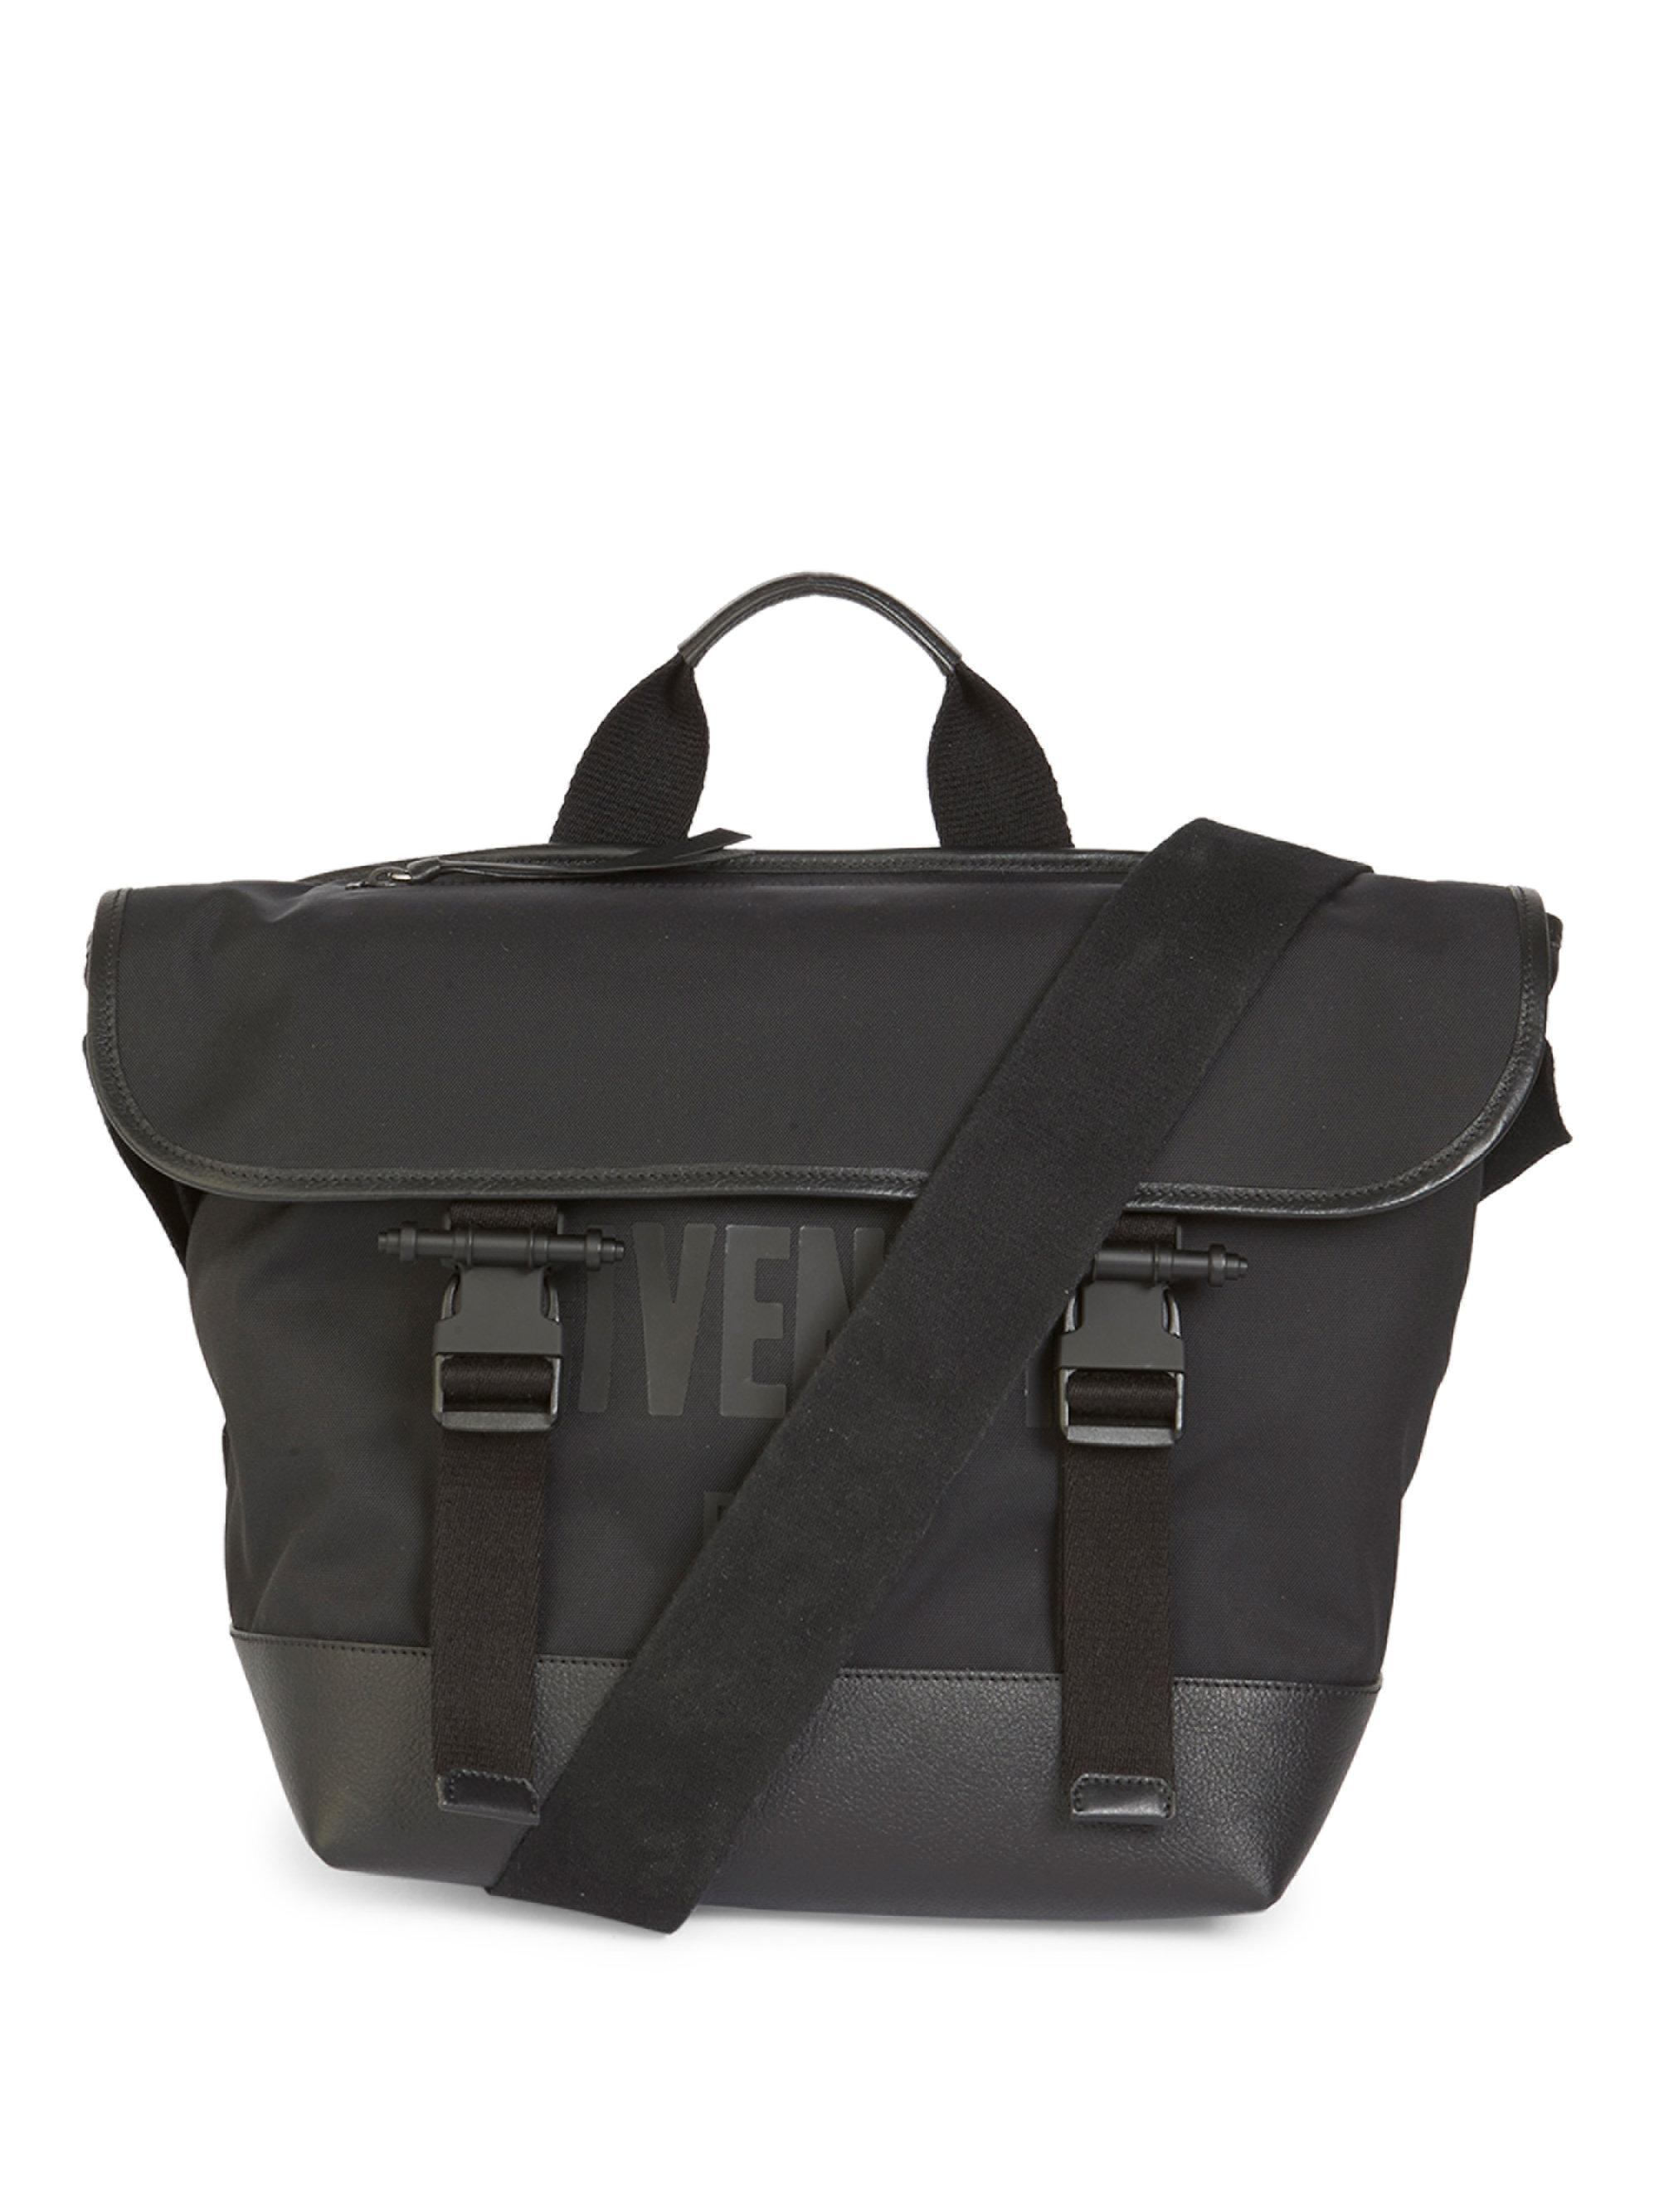 c889587fa4ad Givenchy Logo Detailed Messenger Bag in Black for Men - Lyst